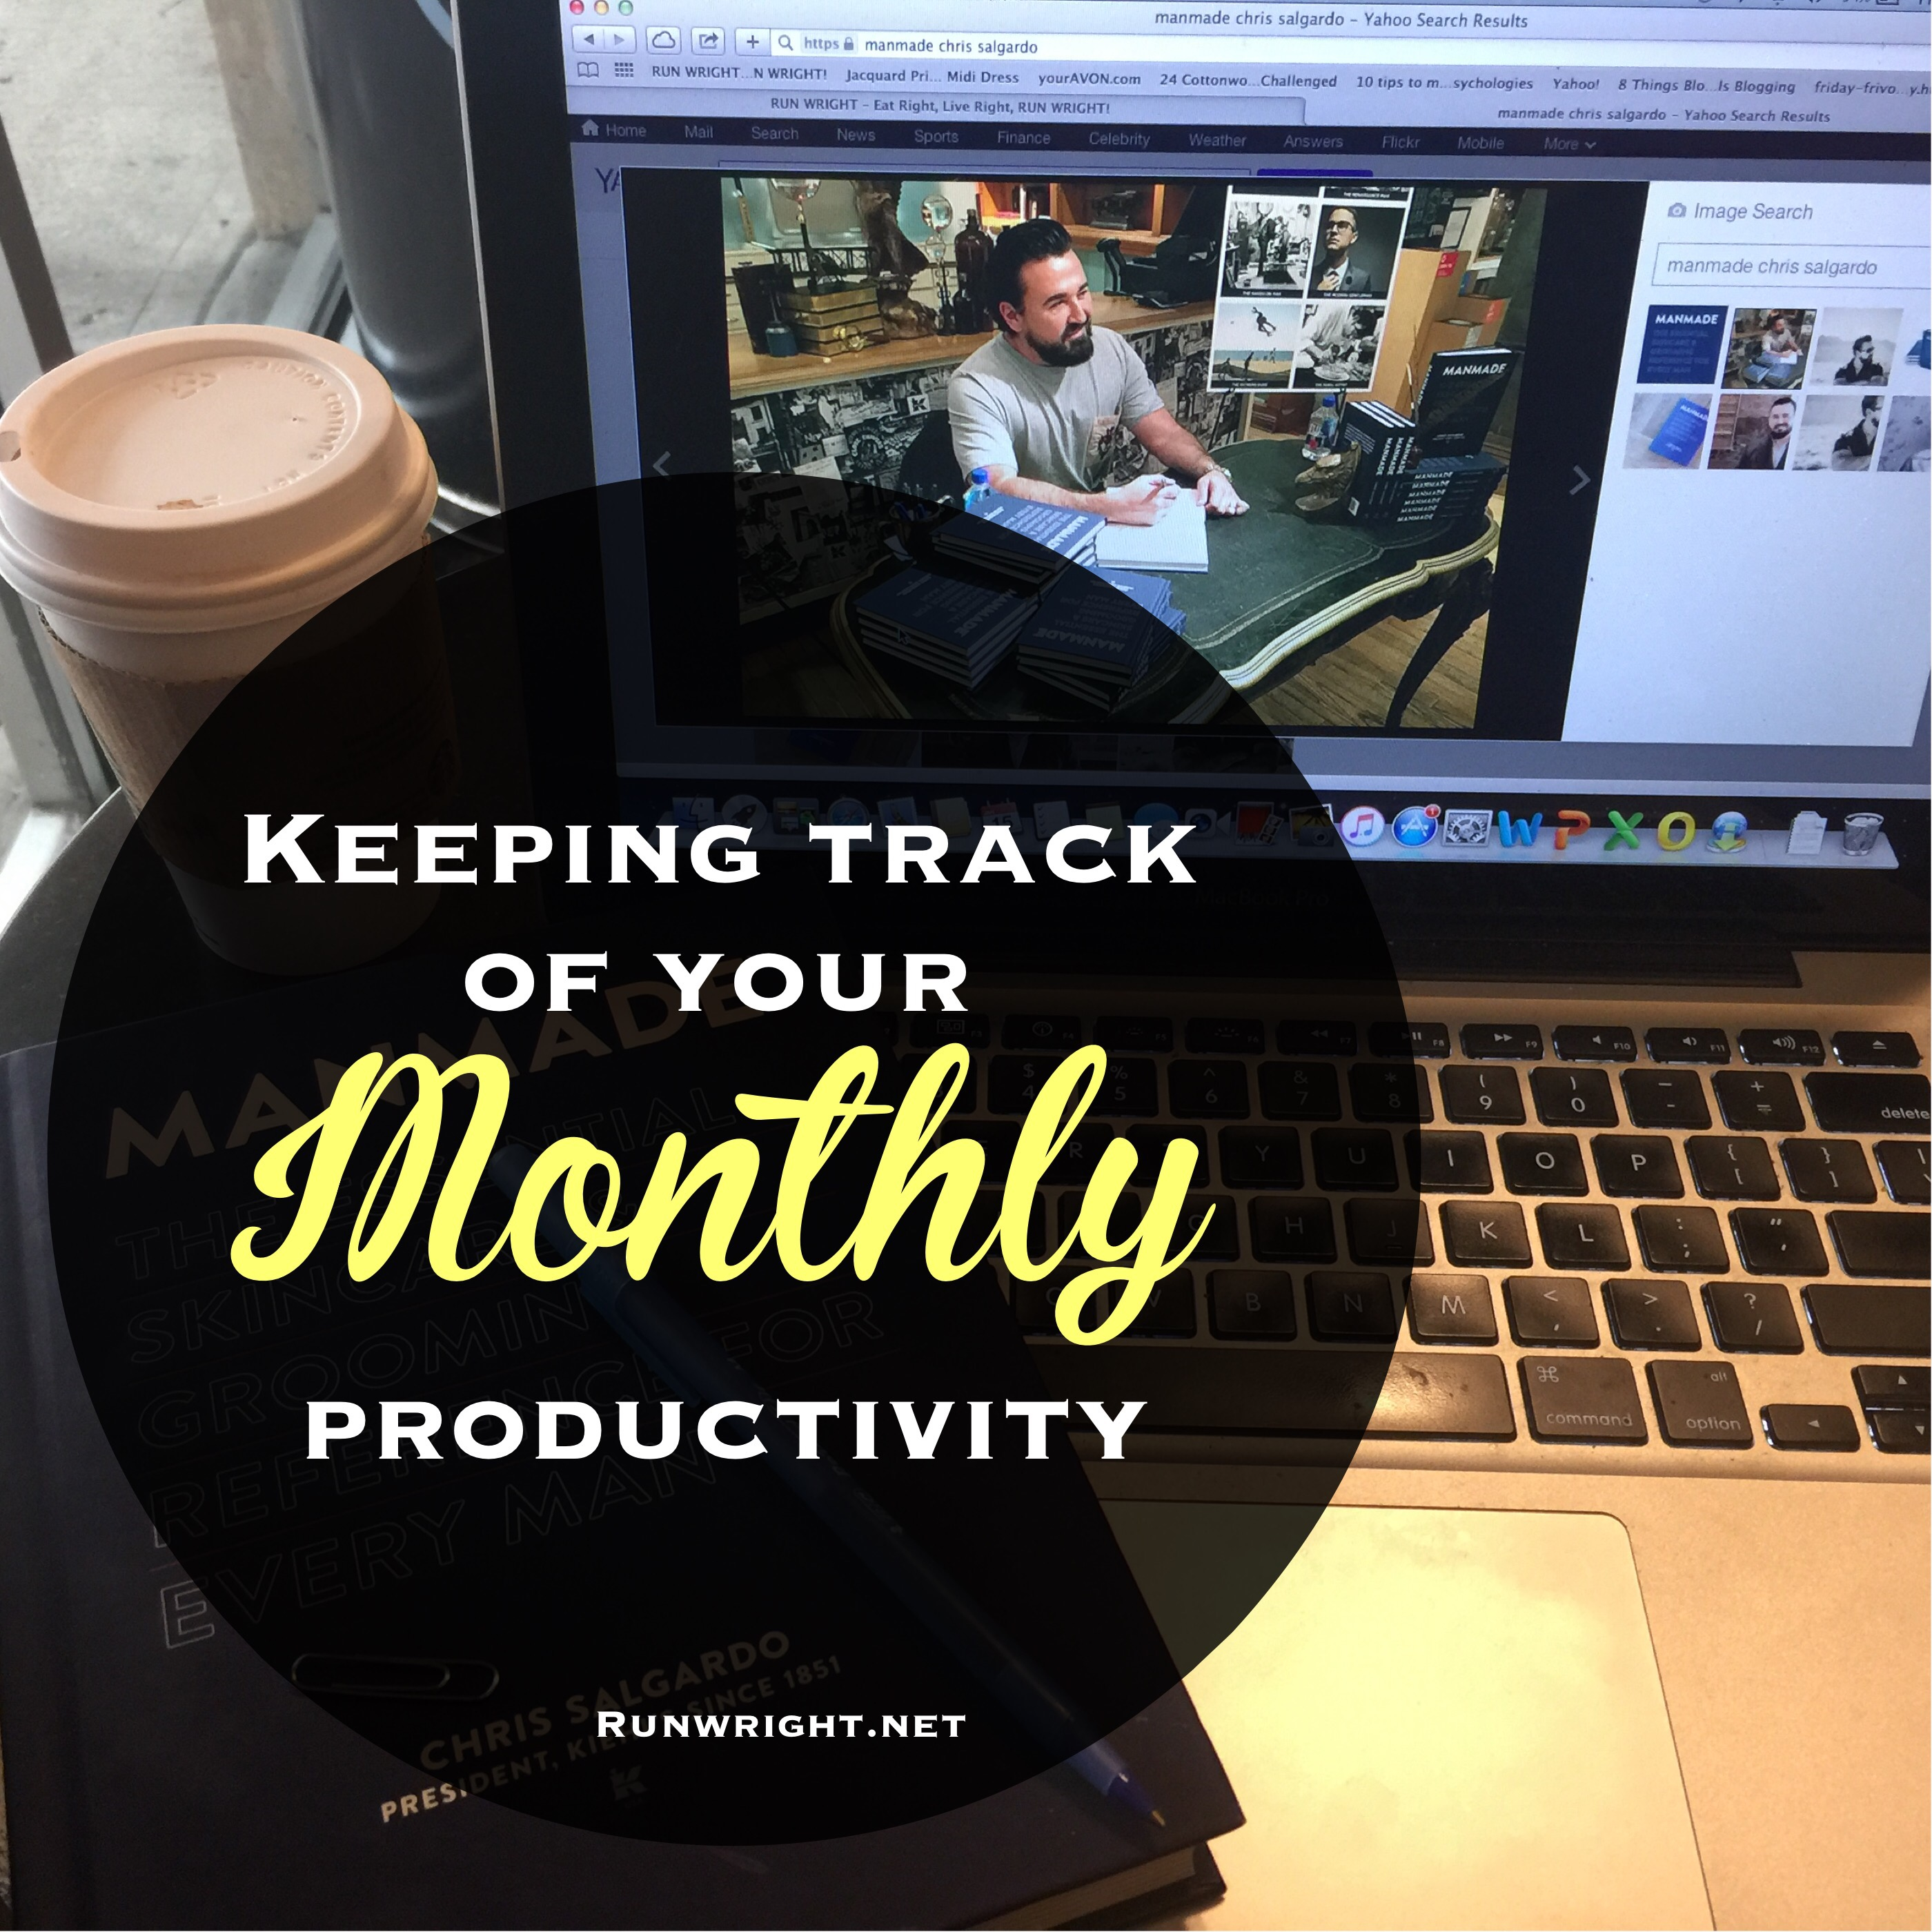 Keep track of your 2016 goals by assessing your monthly productivity.